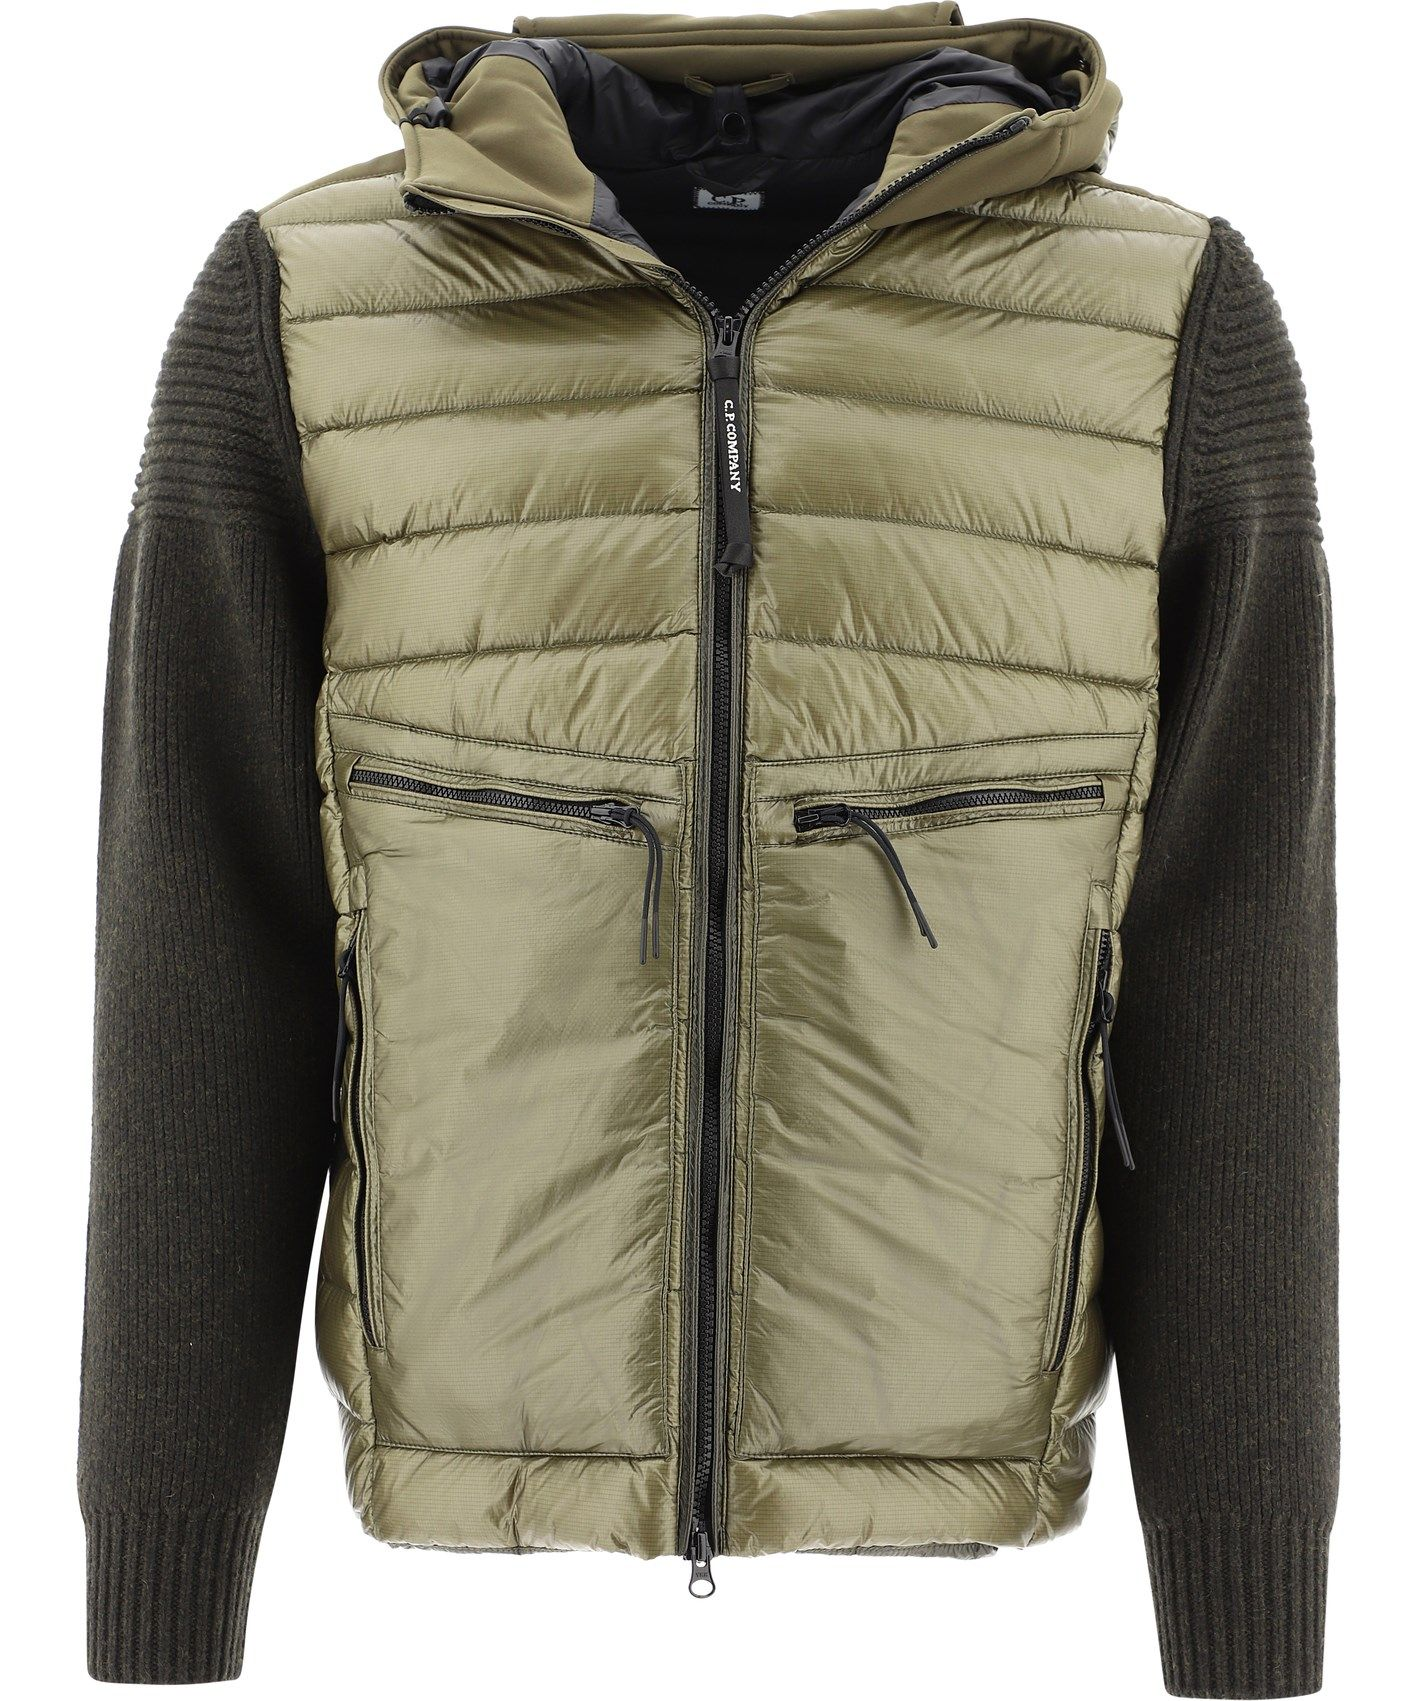 C.p. Company Jackets CP COMPANY MEN'S 09CMKN174A004306M661 GREEN WOOL OUTERWEAR JACKET